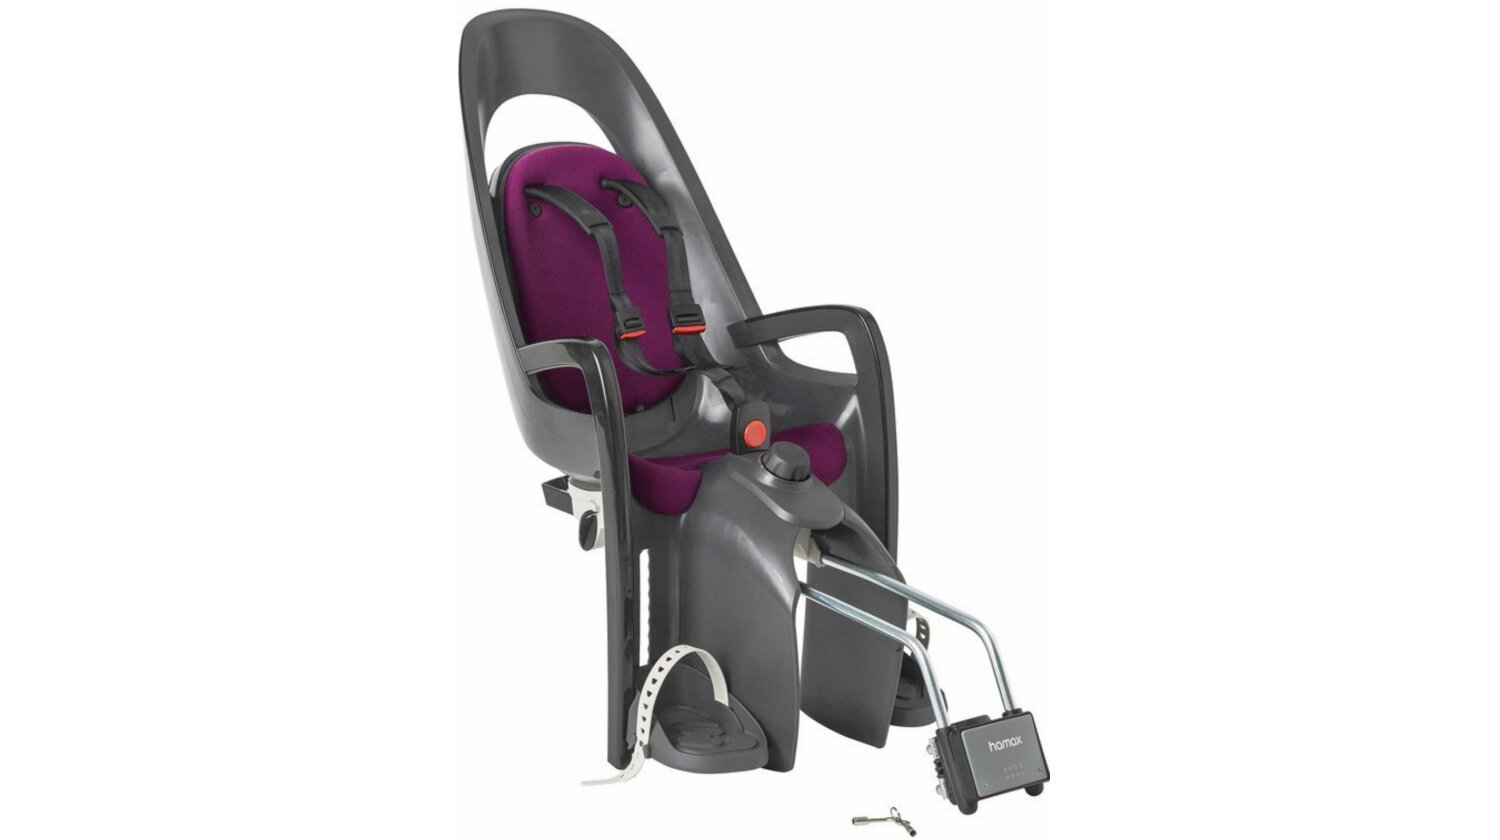 Hamax Caress Kindersitz grau/dkl. grau/purple